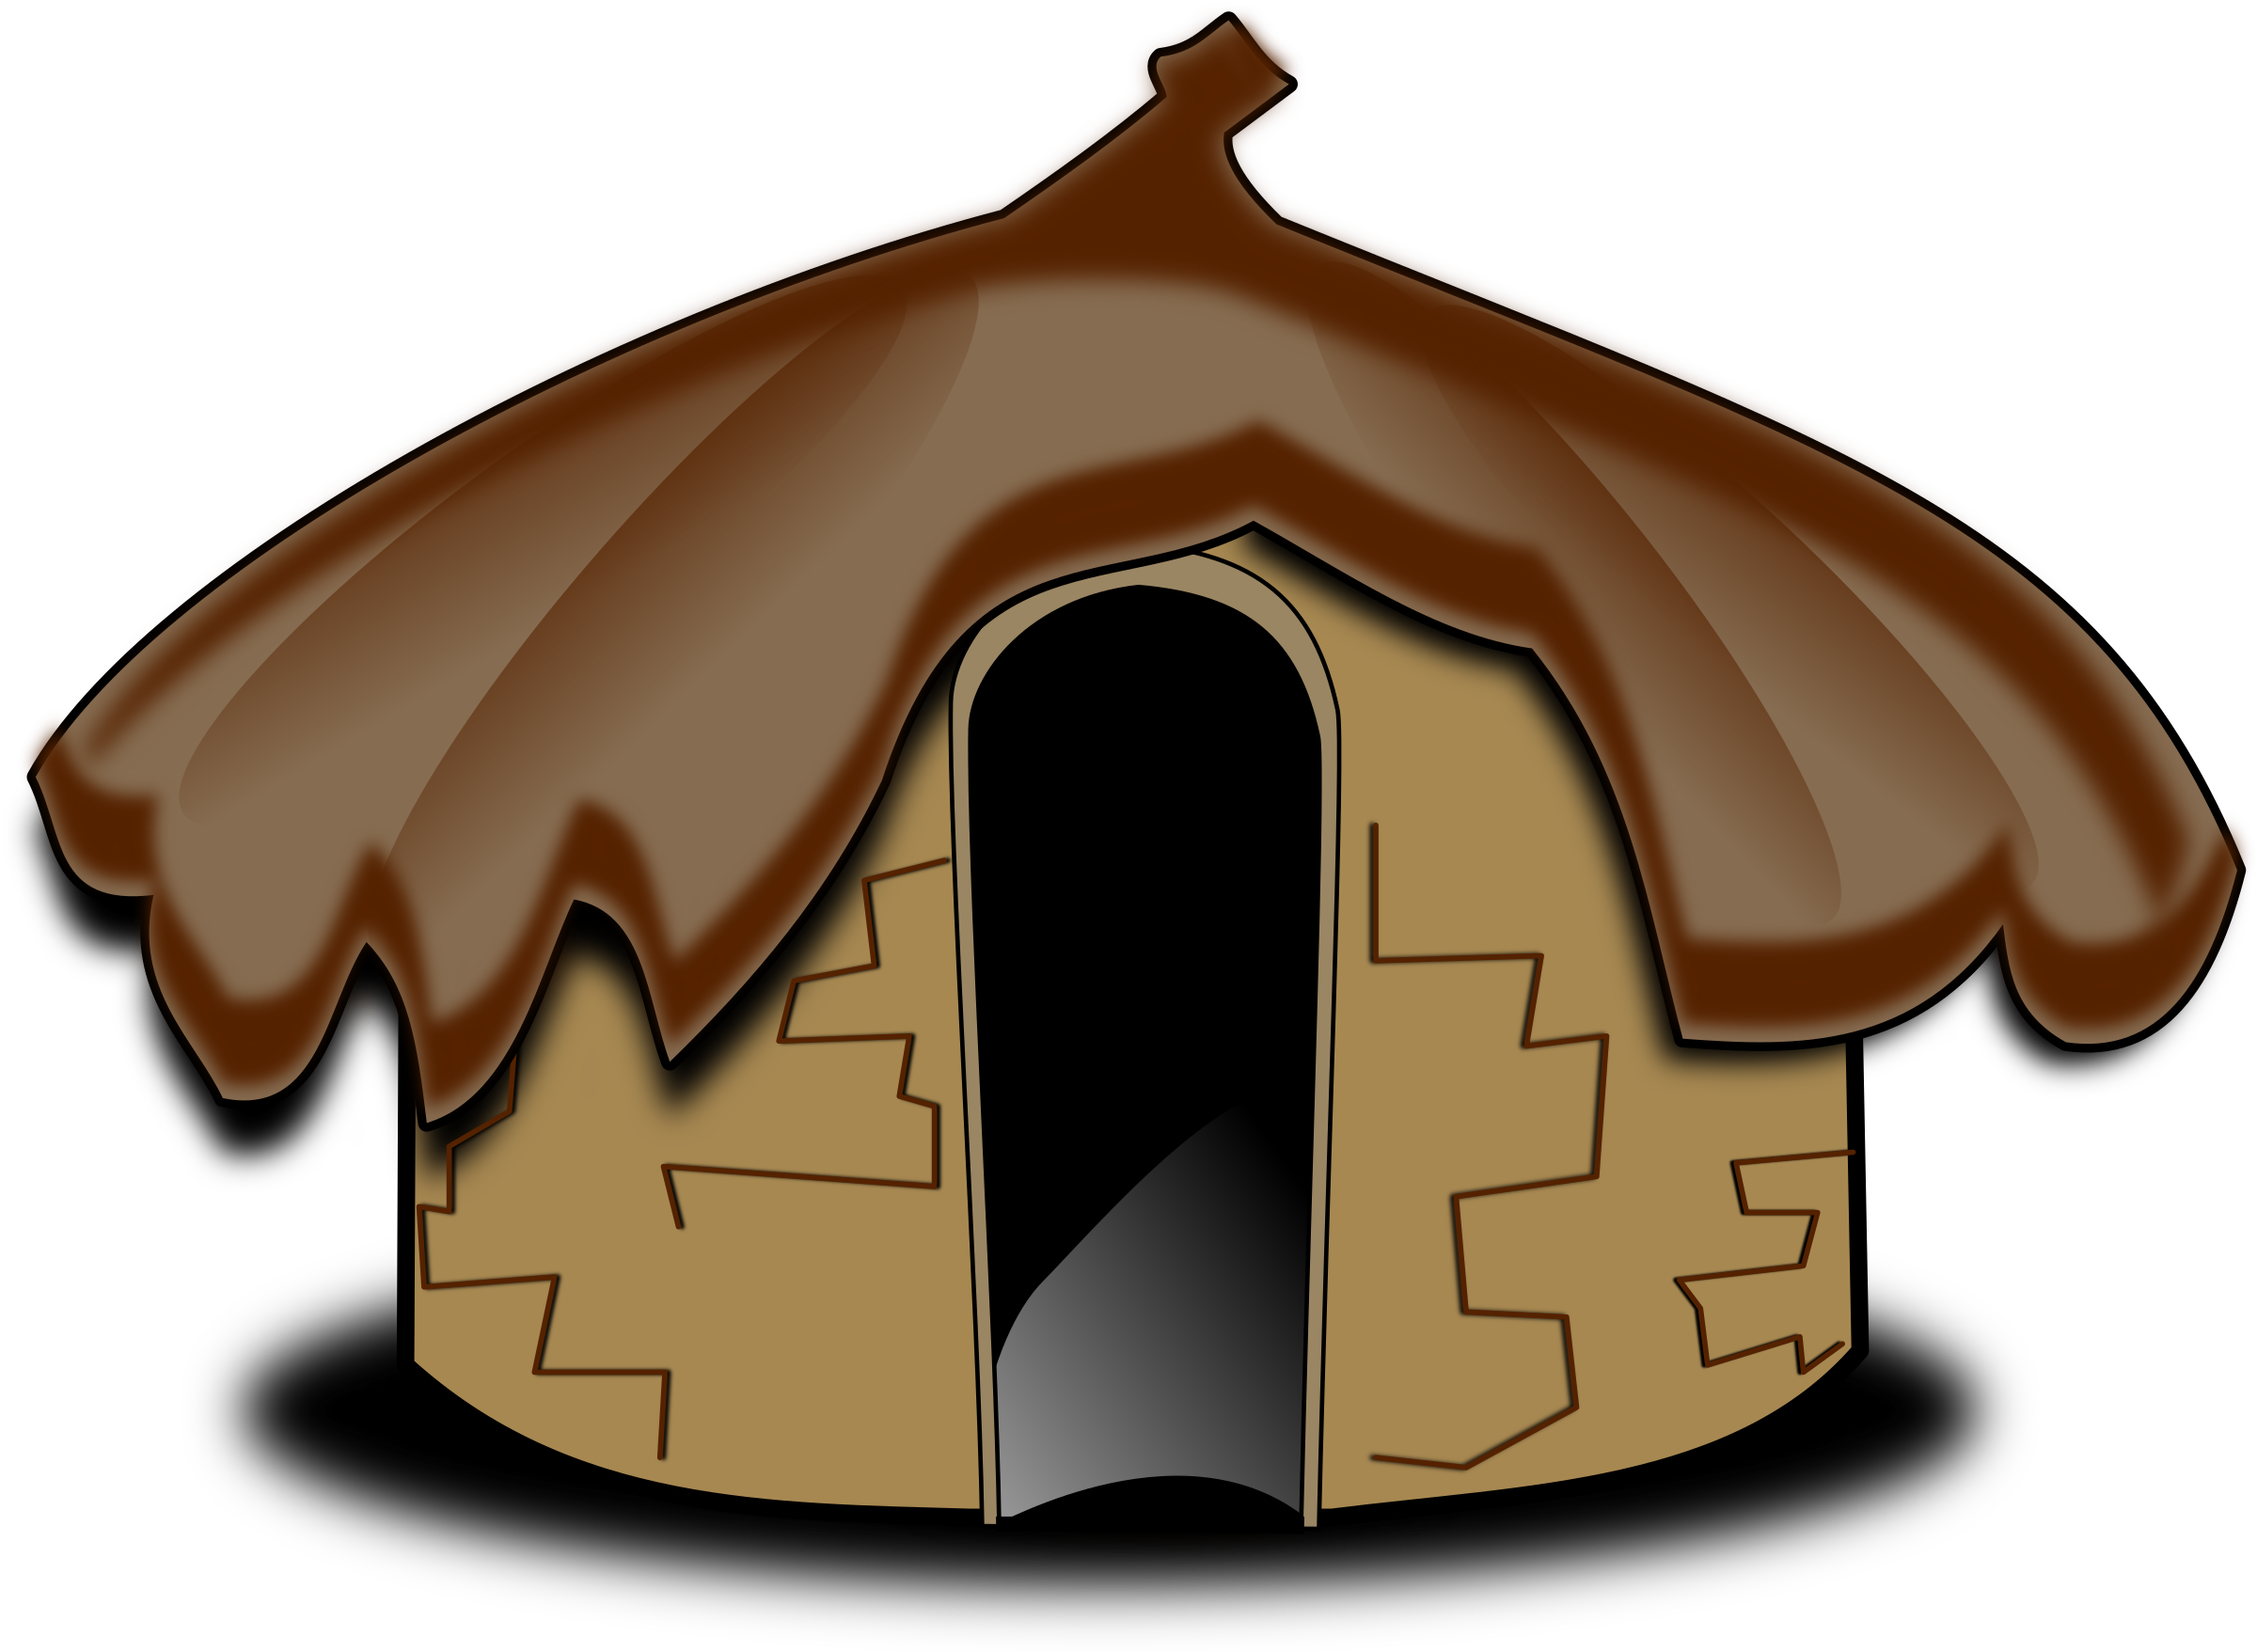 Oca big image png. Clipart turtle house